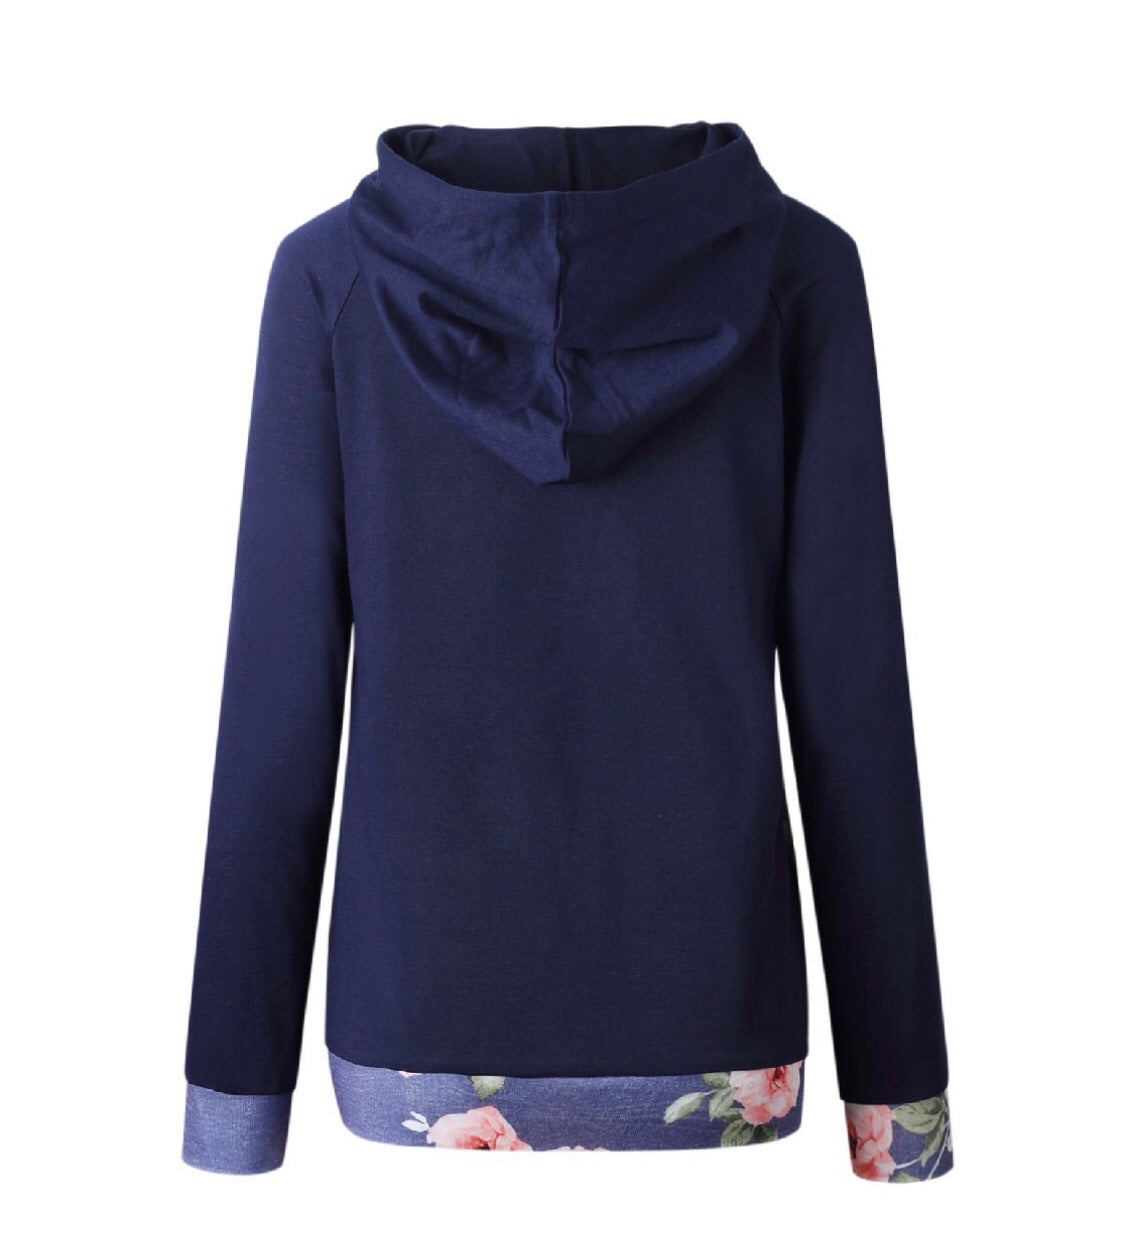 Navy and Floral Hooded Pullover